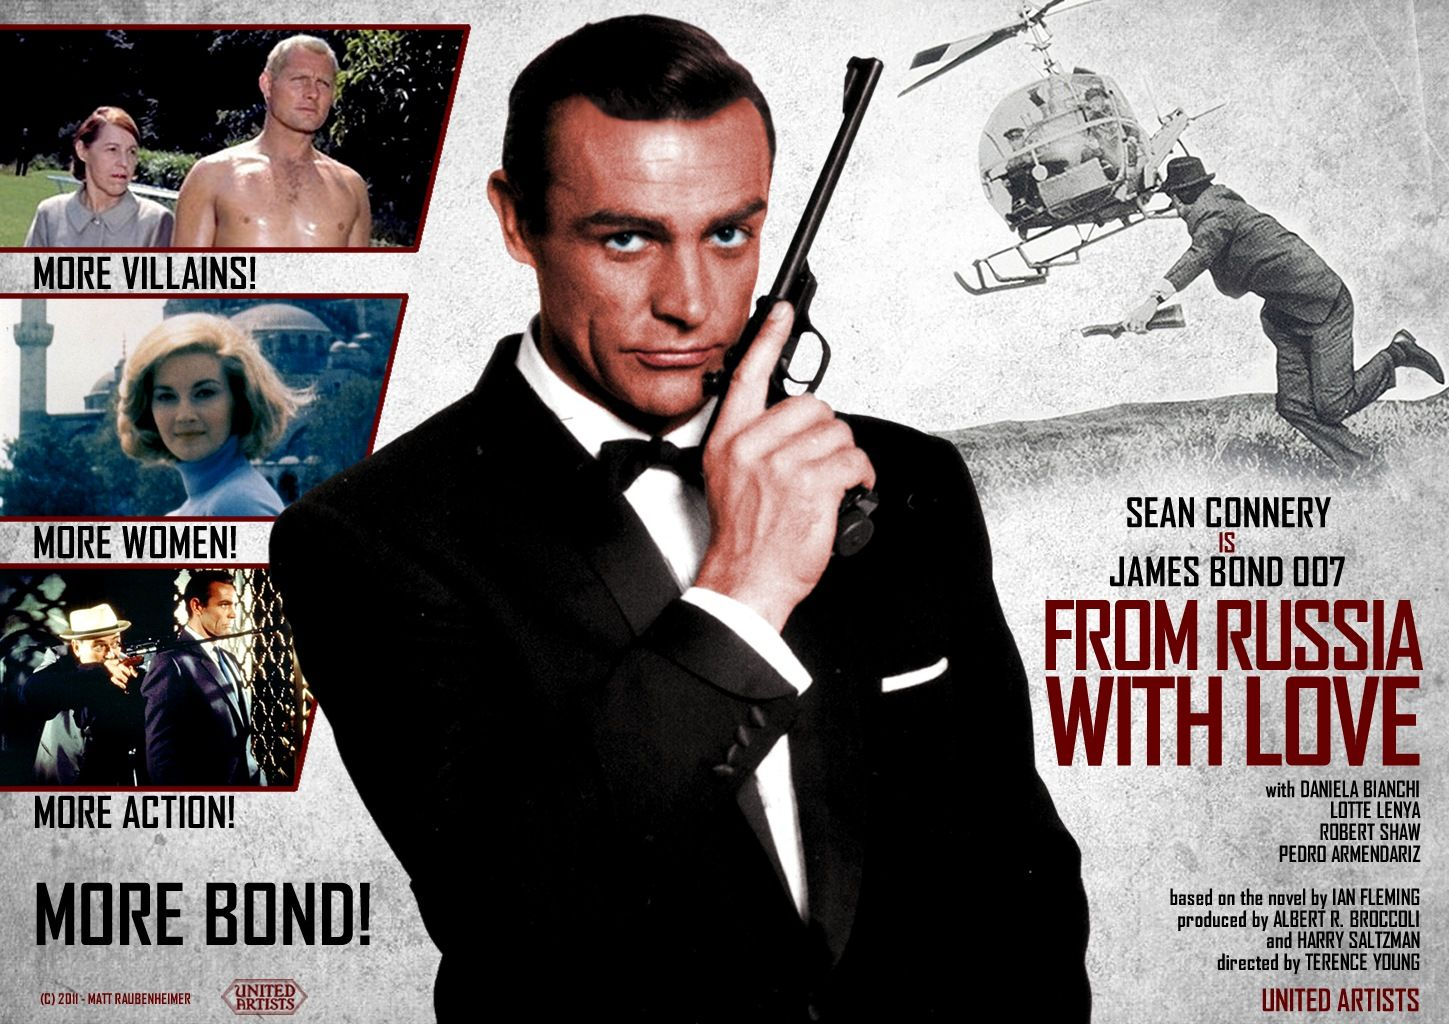 New From Russia With Love Poster With Images James Bond